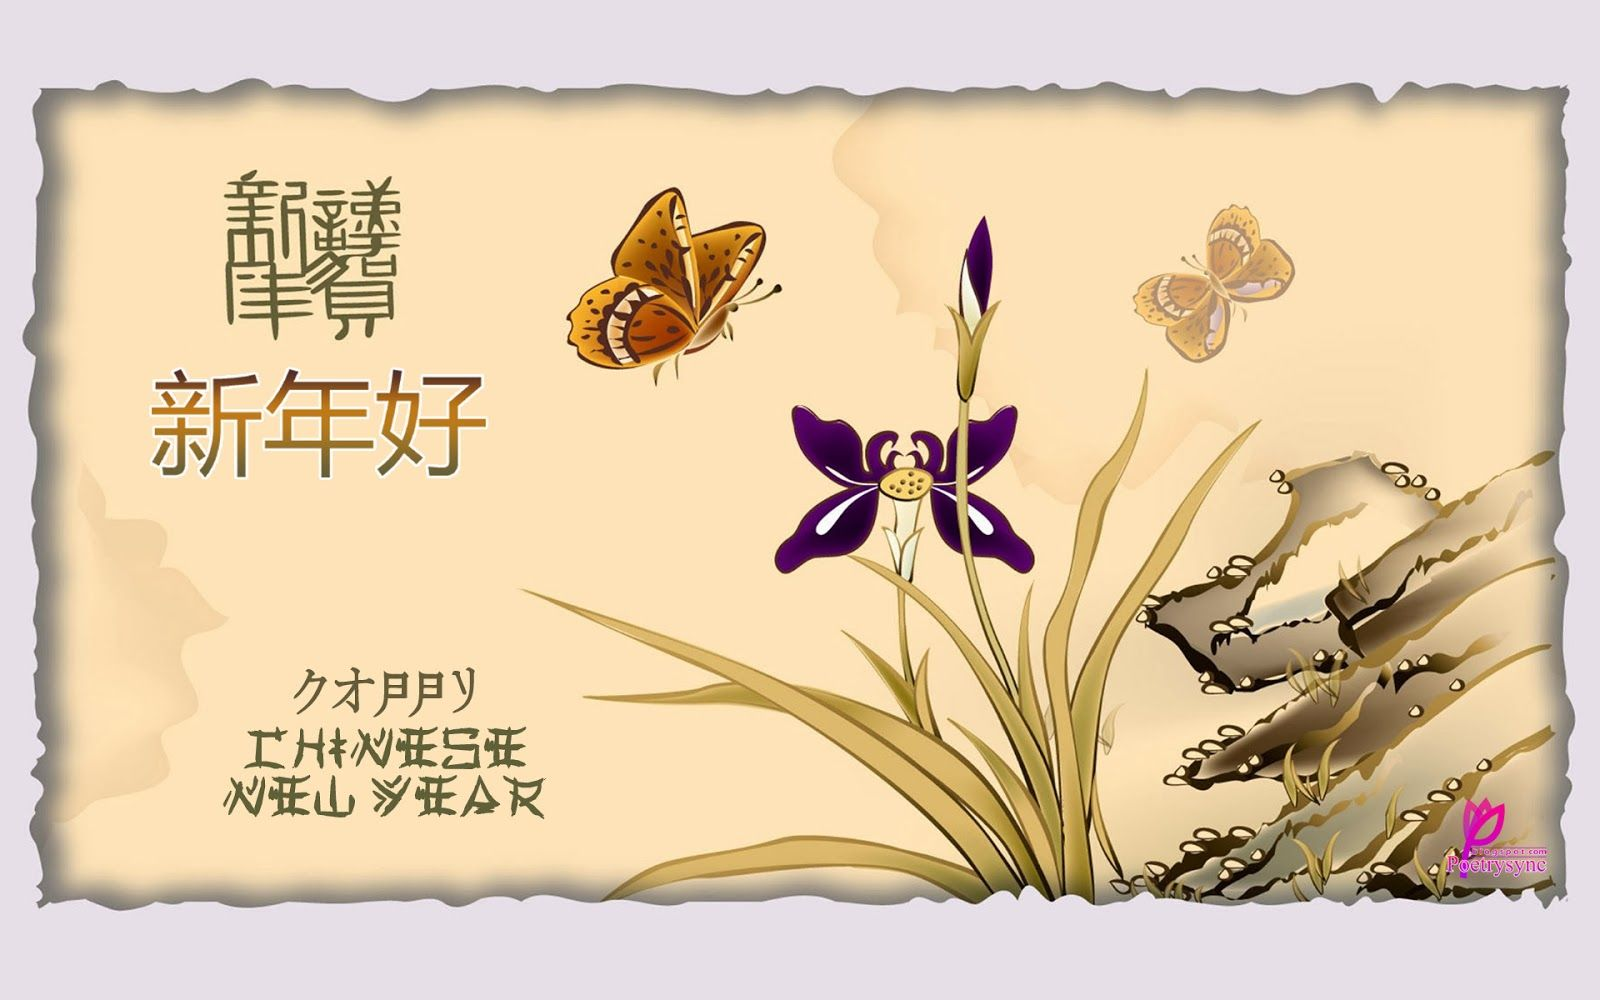 Happy Chinese New Year Wishes Image Message Happy Lunar